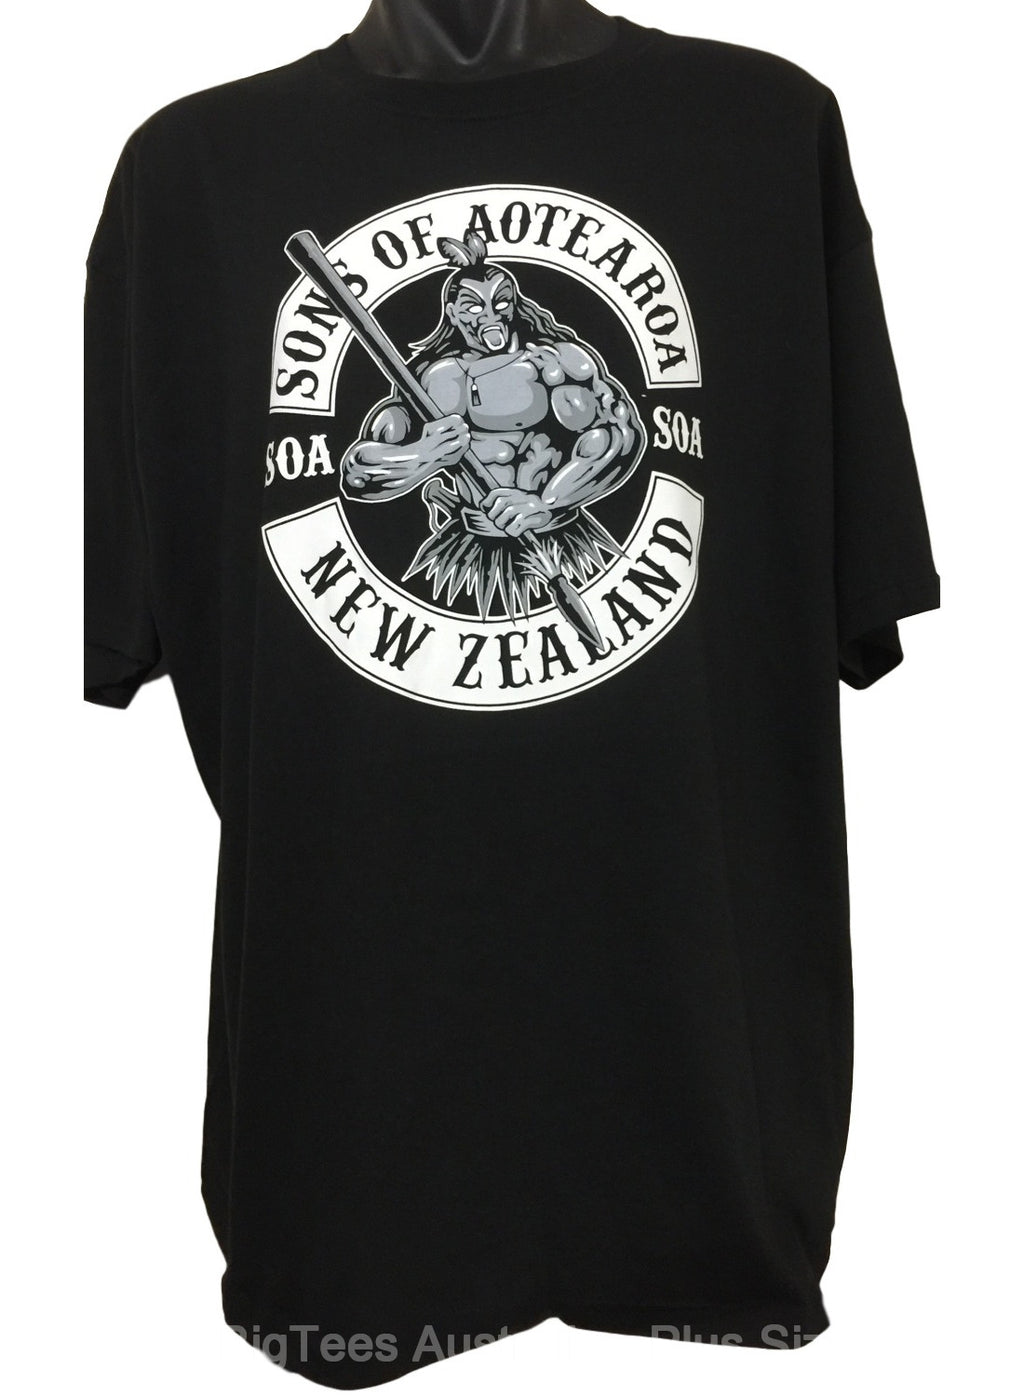 Sons of Aotearoa T-Shirt (Regular and Big Sizes)